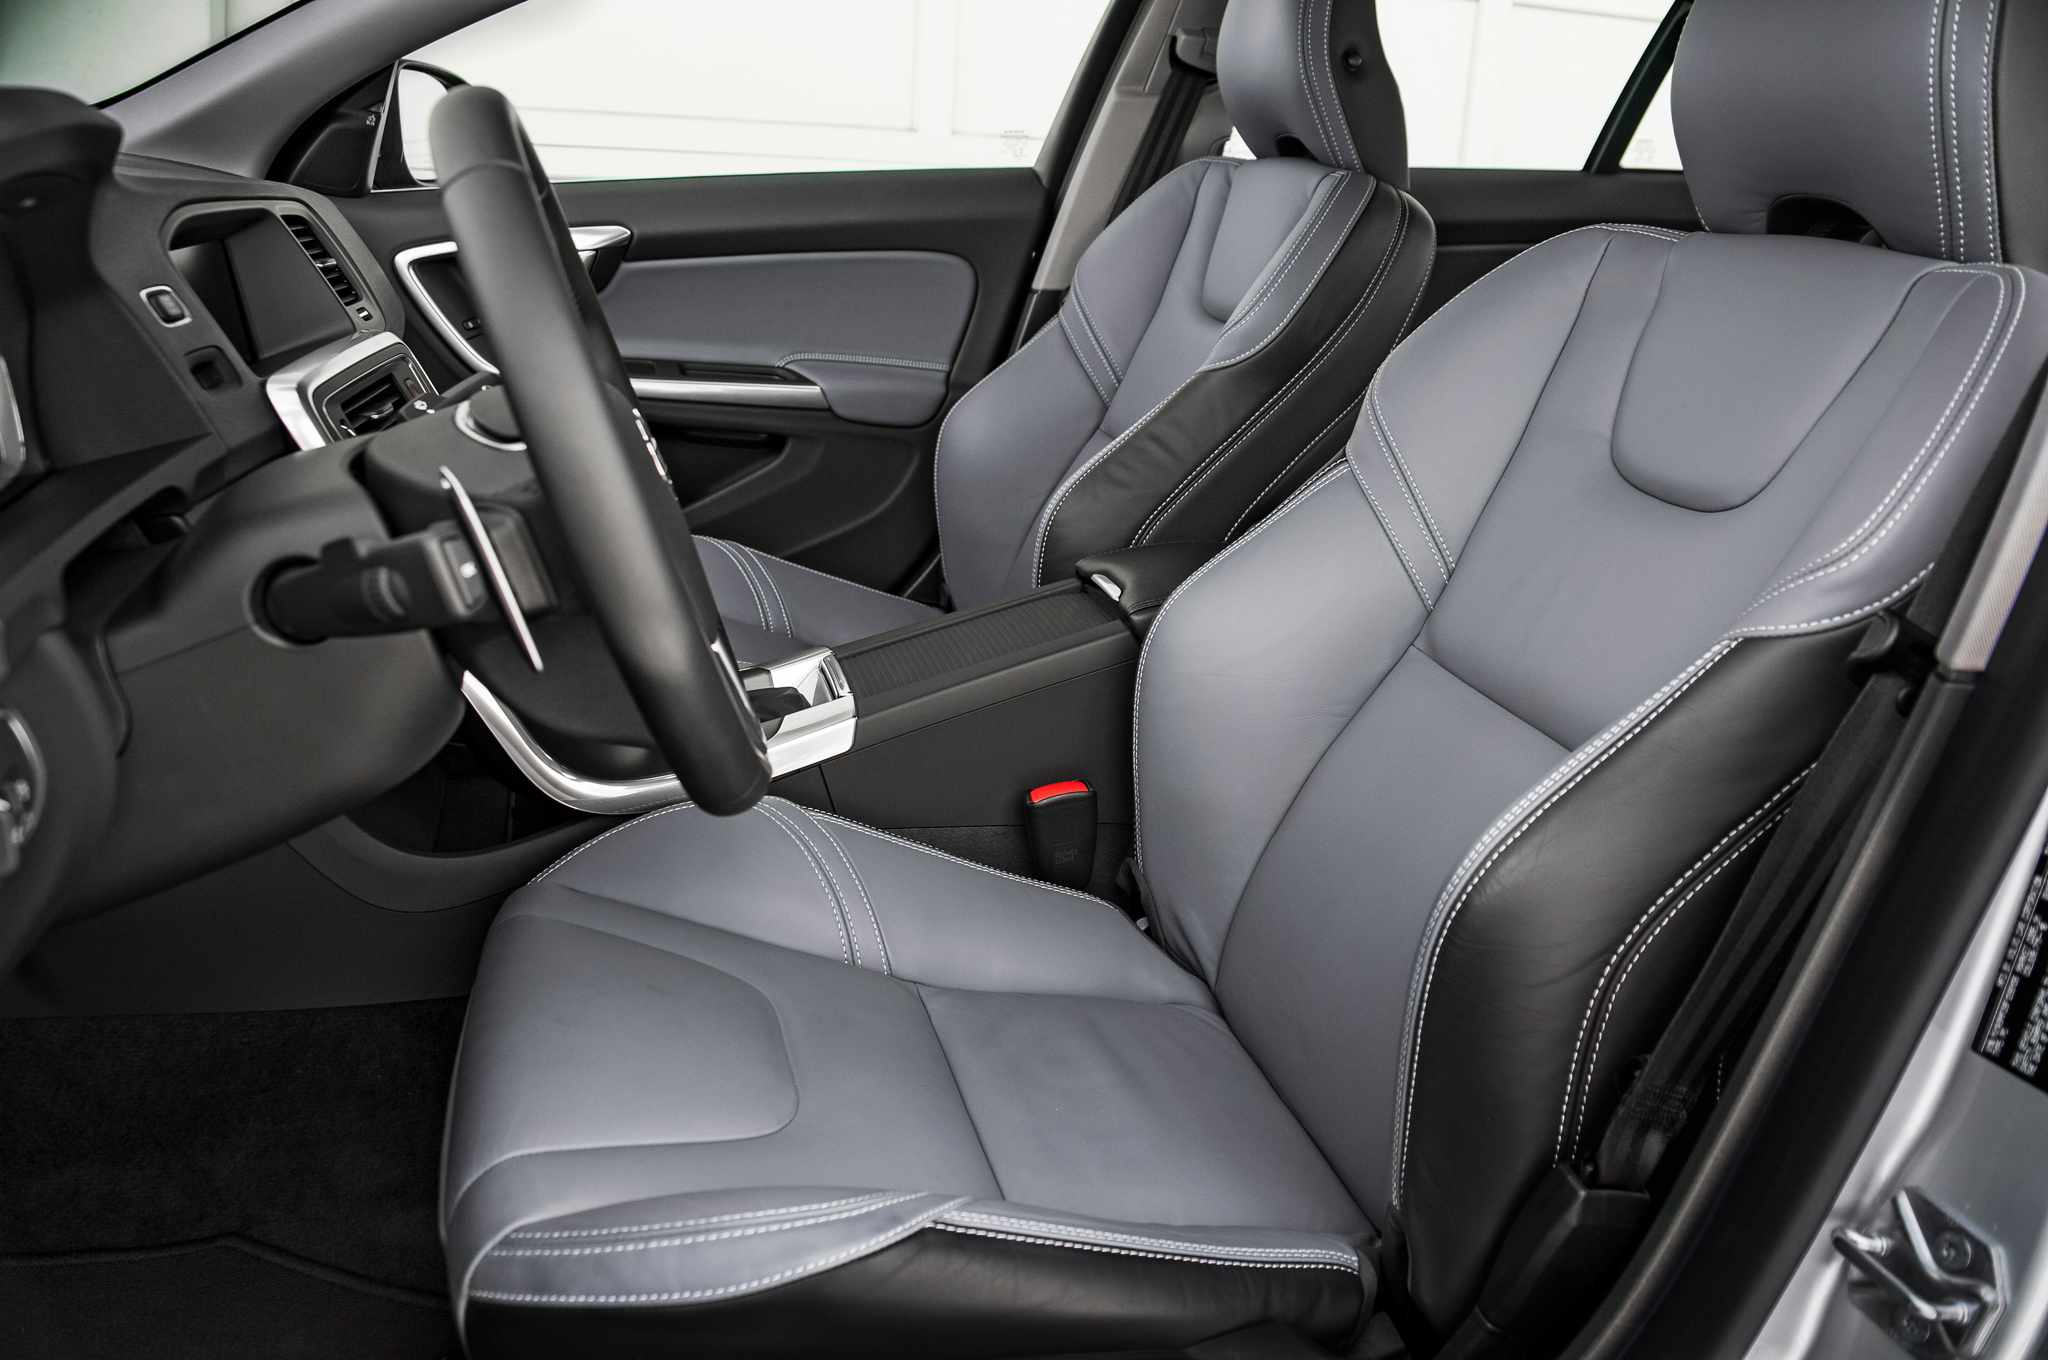 2015 Volvo V60 Front Seats Interior (Photo 33 of 38)